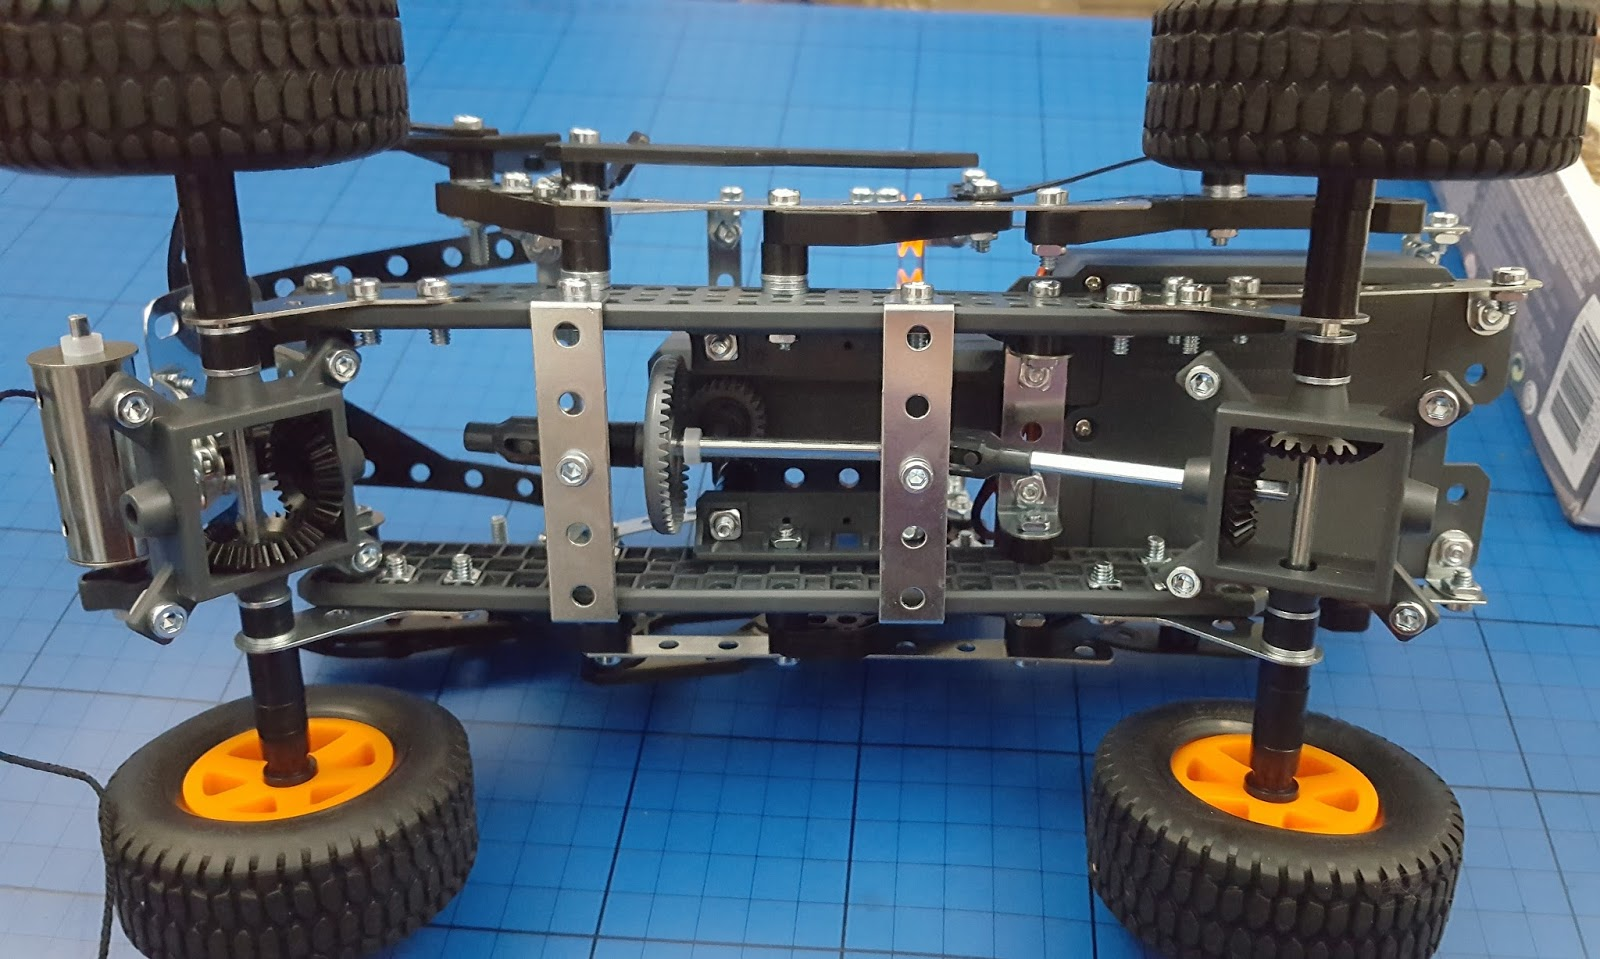 Motor Reversing Switches Electronics In Meccano The Brick Castle 25 4x4 Off Road Truck Review Age 9 There Is A 3 Way Switch For Forward And Reverse Which Quite Hard To Get With This Model